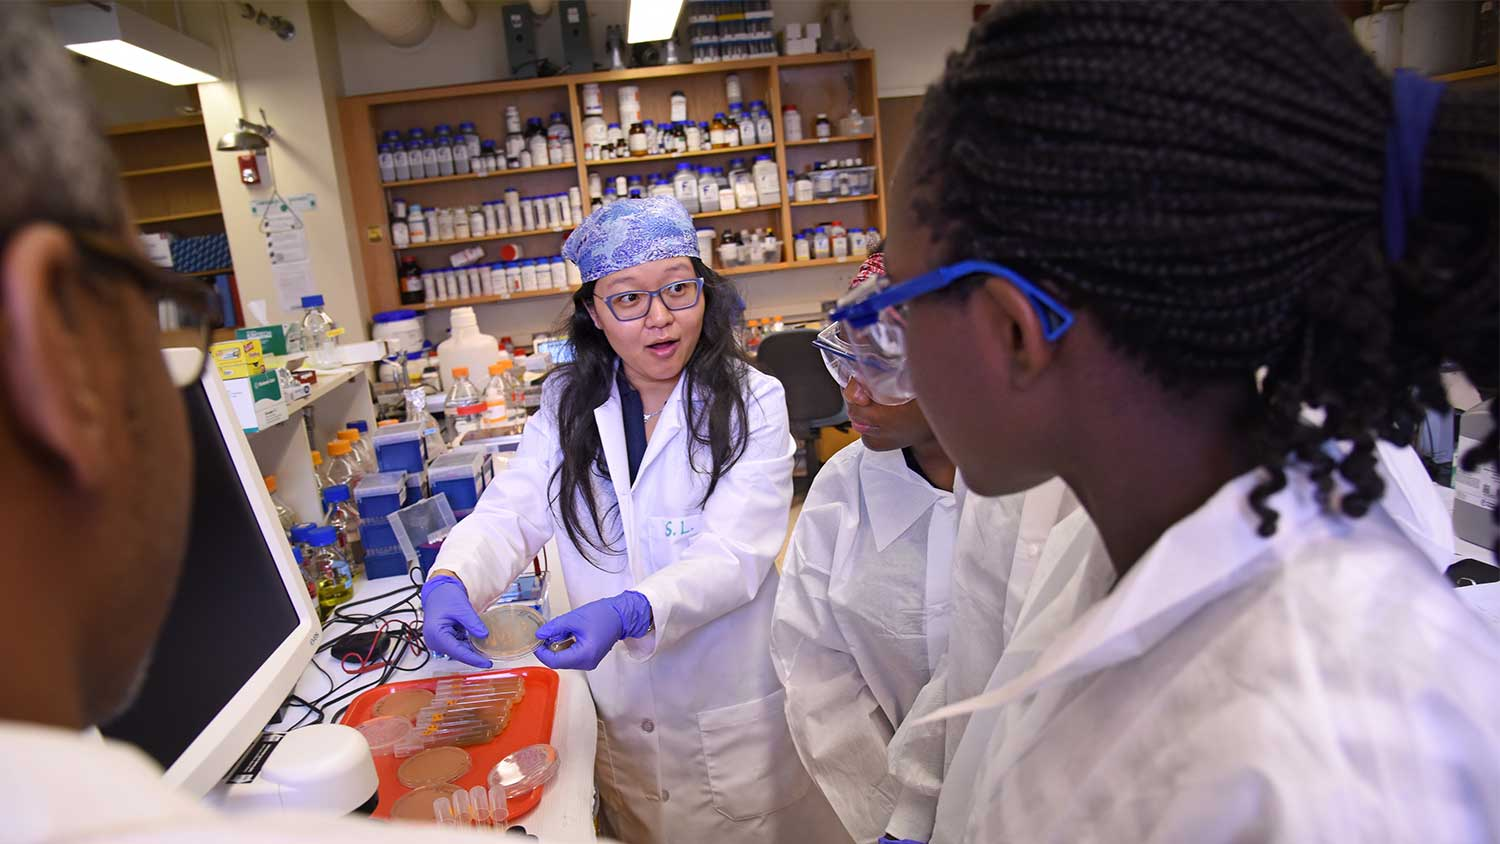 Young students working in a lab